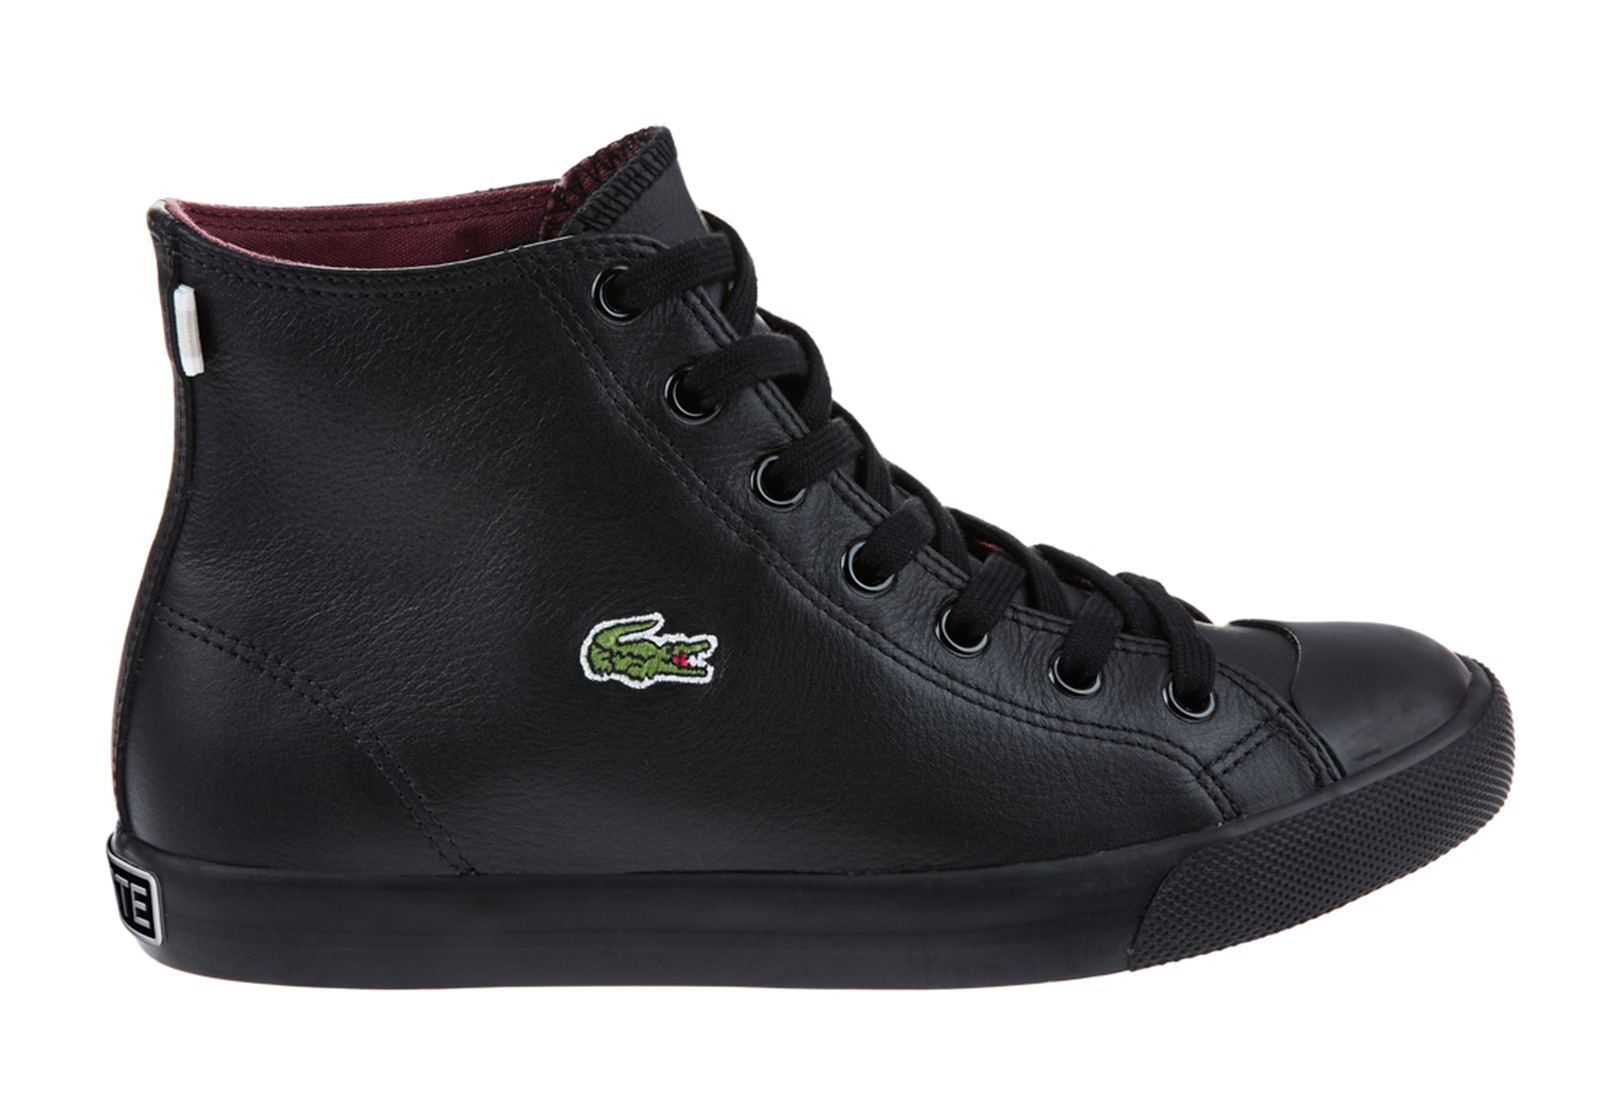 60e8a3980a25 Lacoste Sneakers - L27 Mid Cls - zx-spw104702h - Online shop for ...